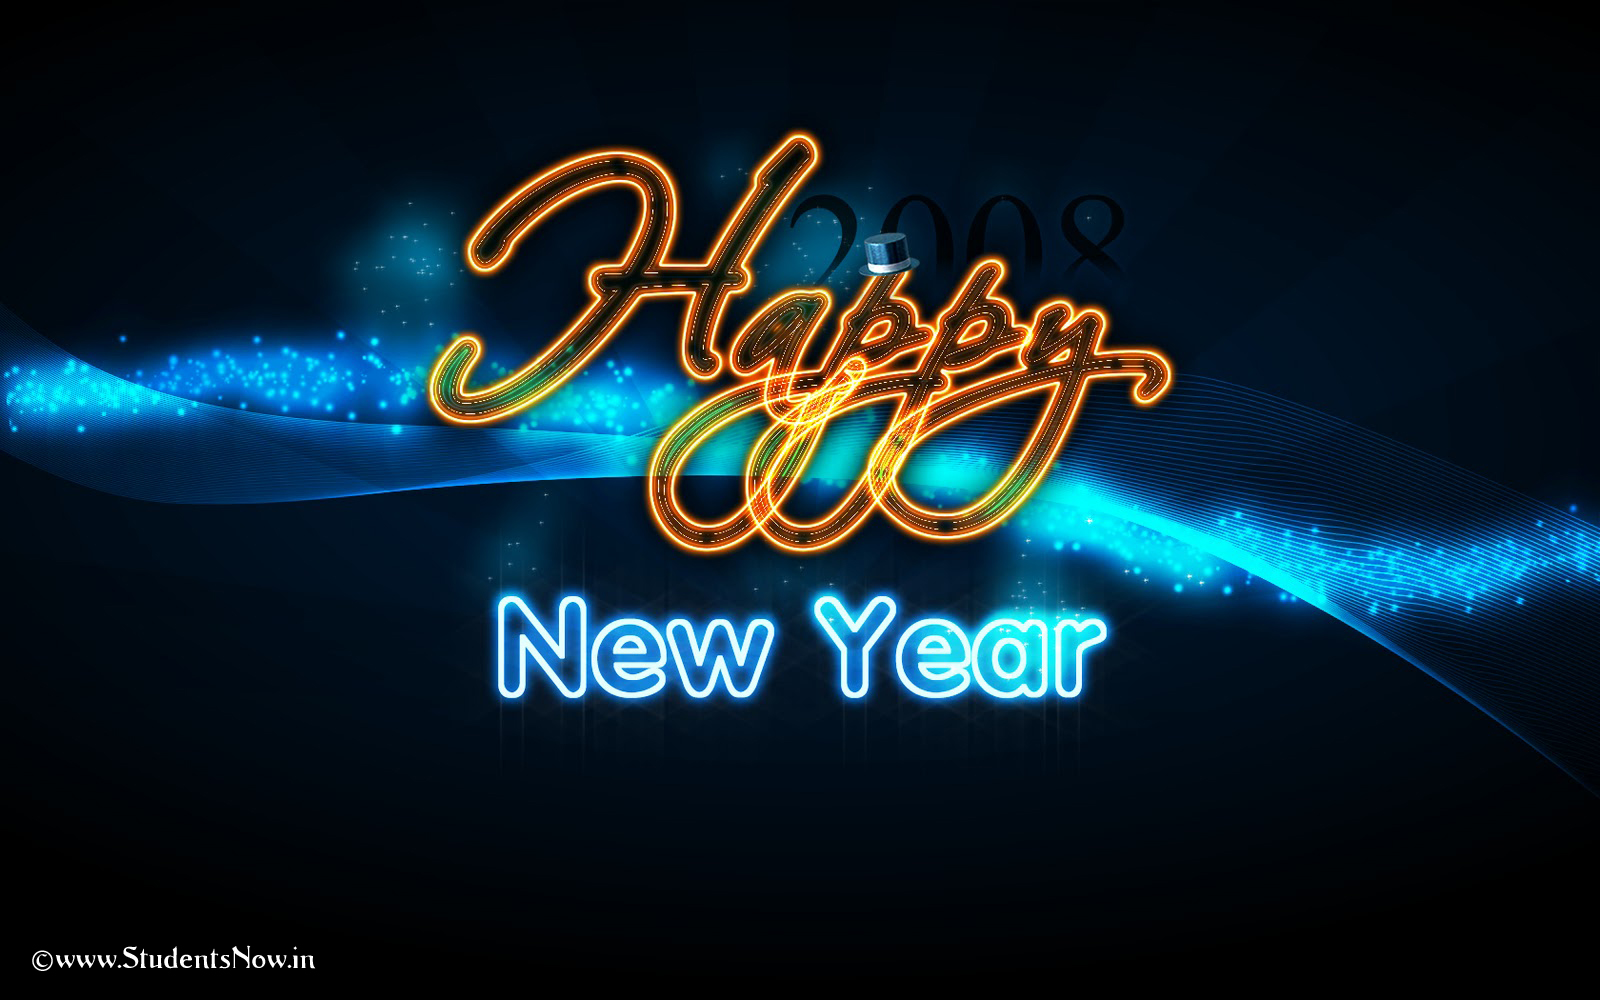 New Year  2013 Greetings  2013 New Year Wallpapers HD. 1600 x 1000.New Year Wishes For Lover Photos In Malayalam Actress